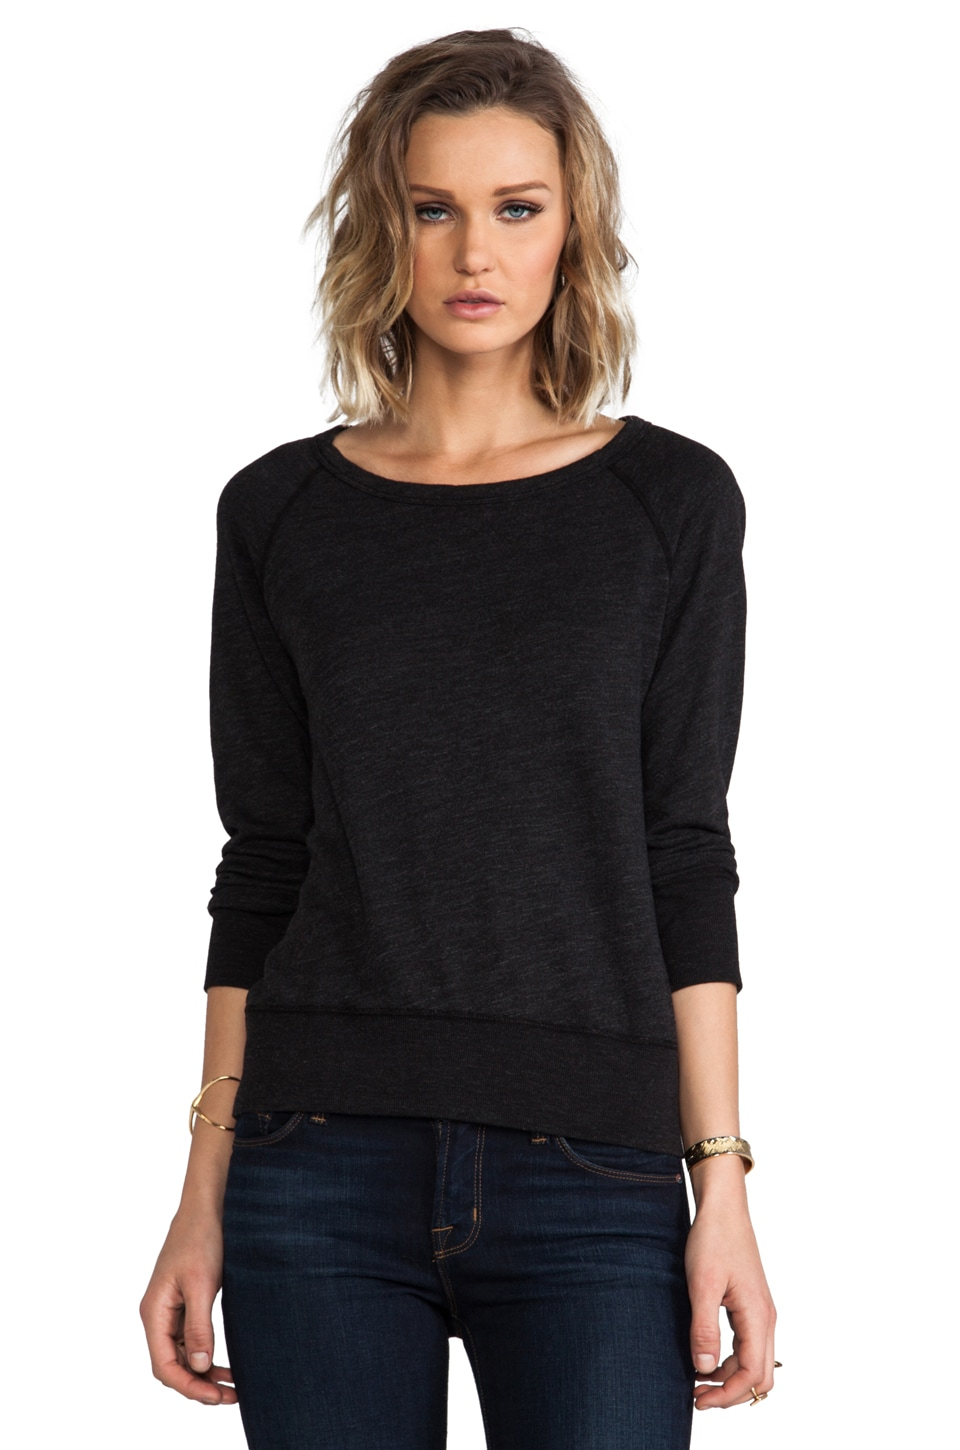 James Perse Vintage Fleece Sweatshirt in Black